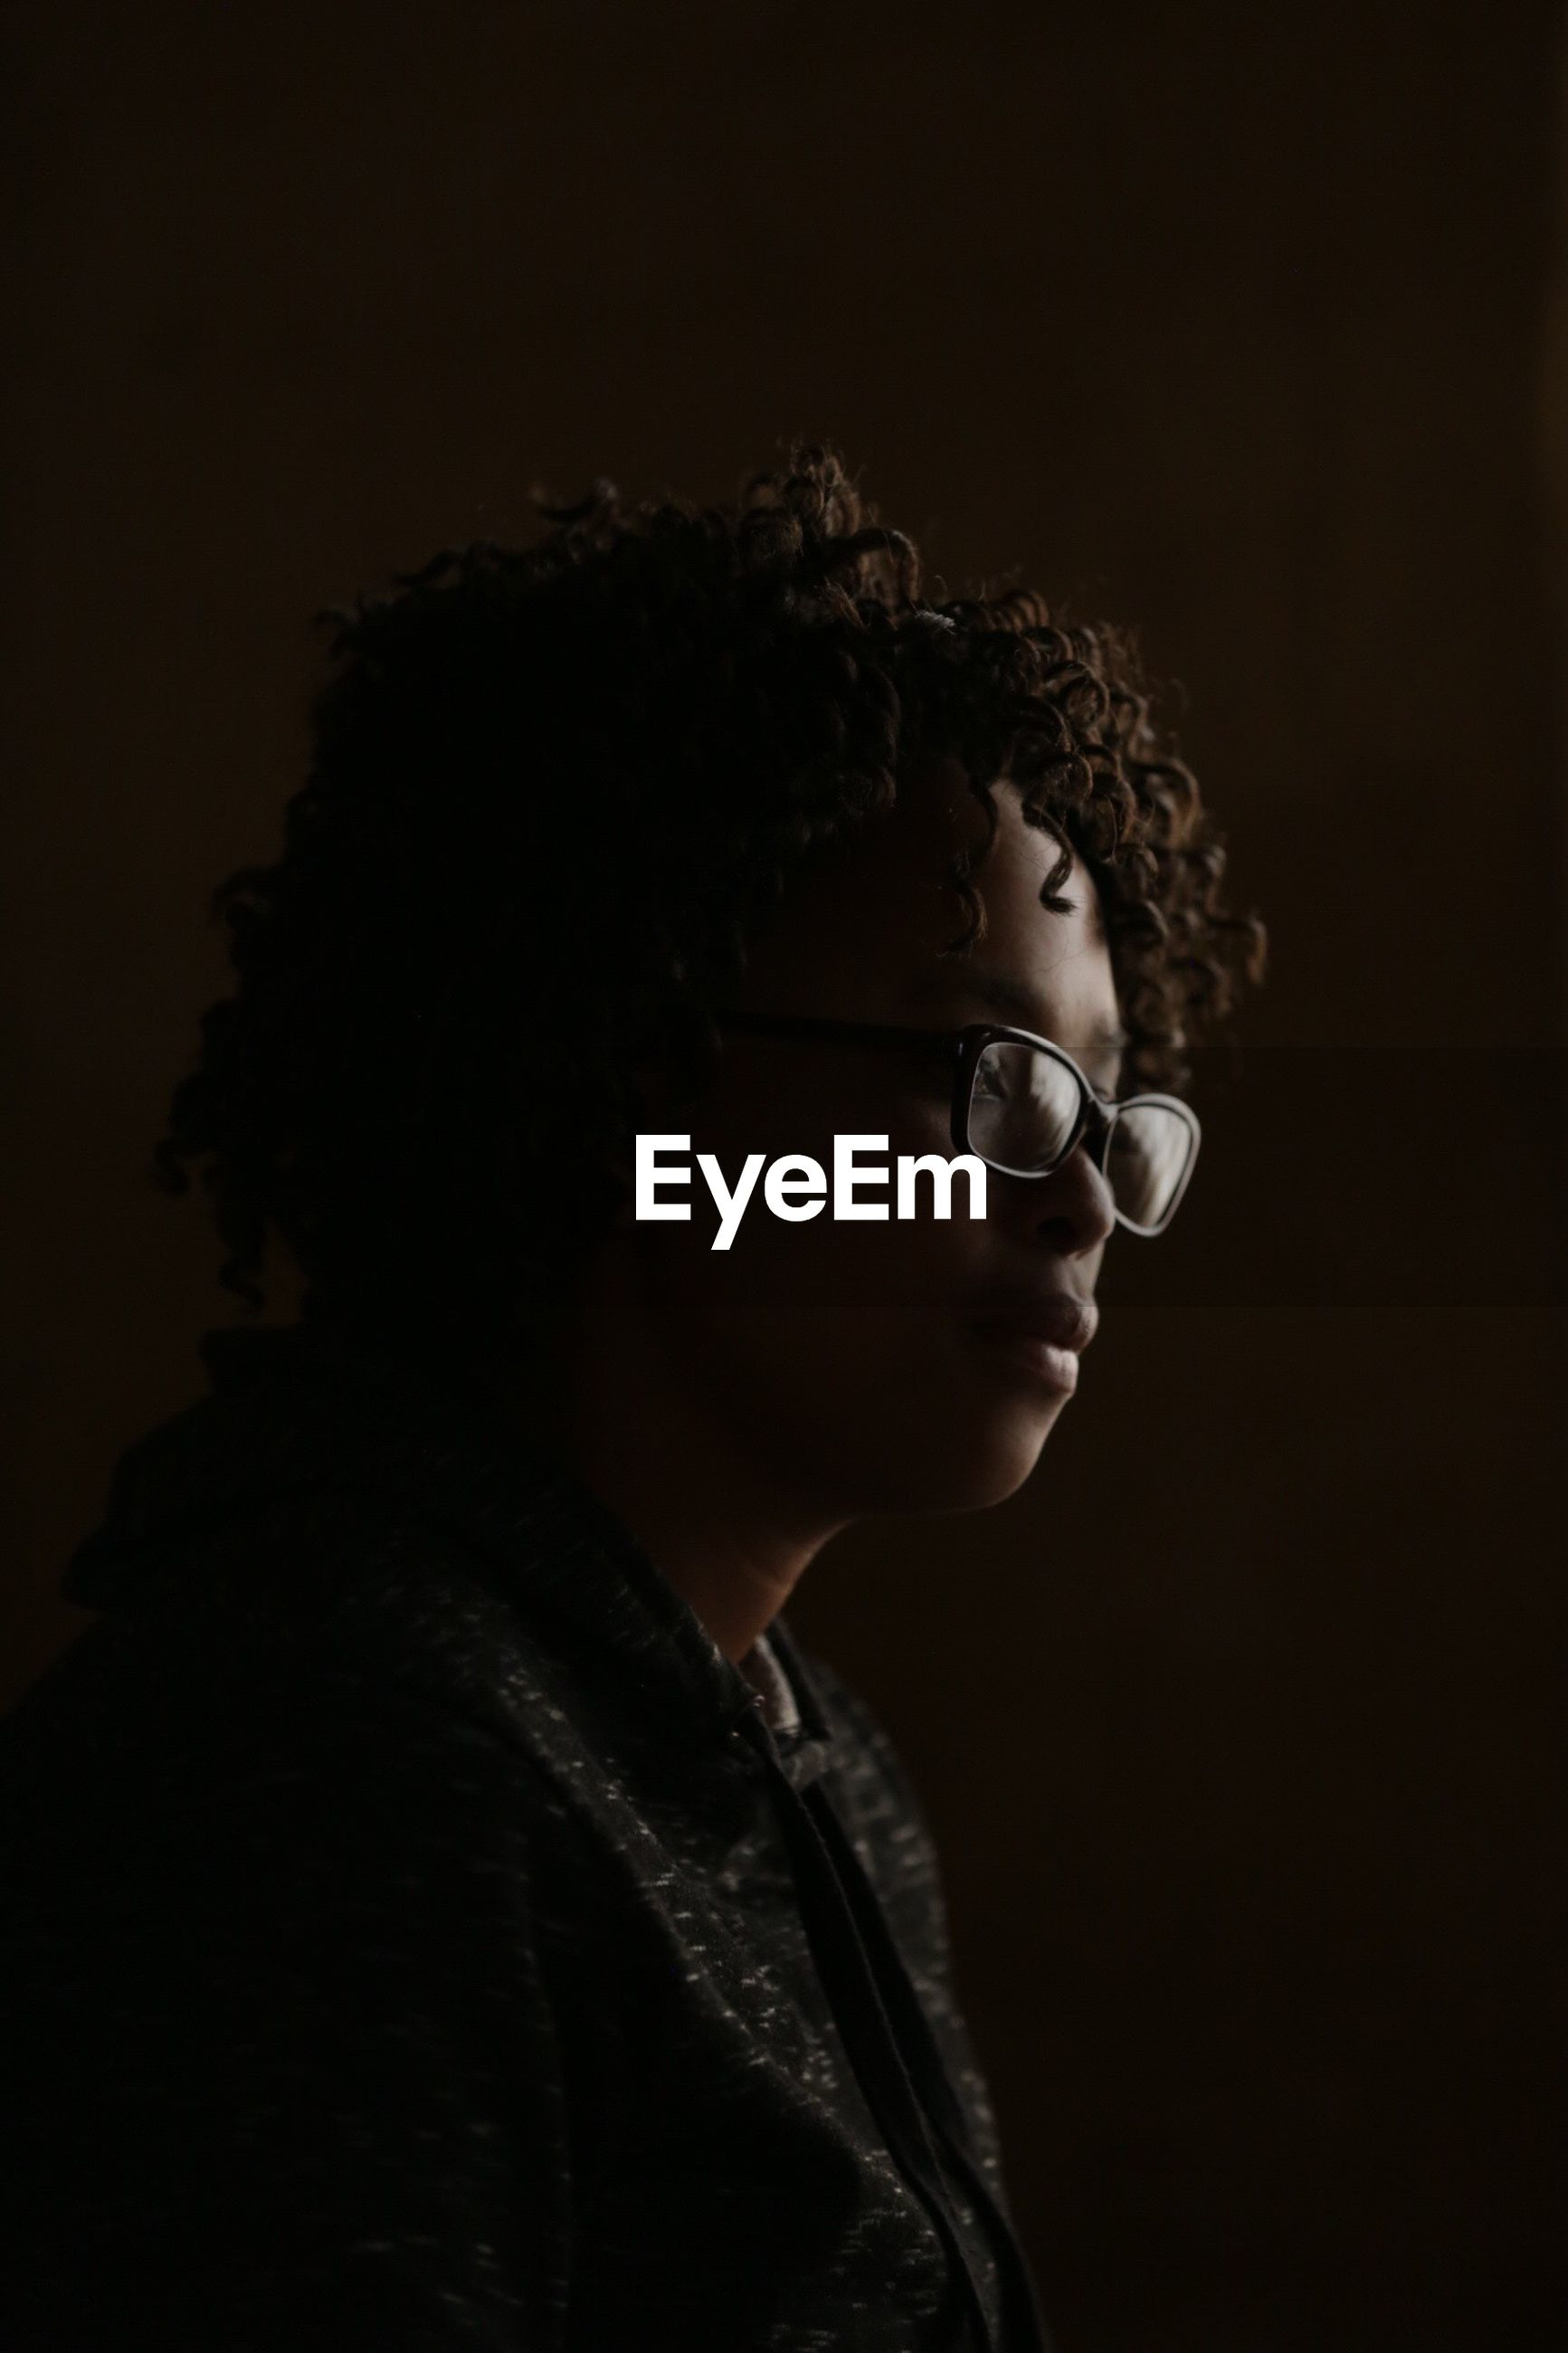 eyeglasses, studio shot, one person, curly hair, brown background, side view, young adult, real people, headshot, indoors, black background, young women, close-up, people